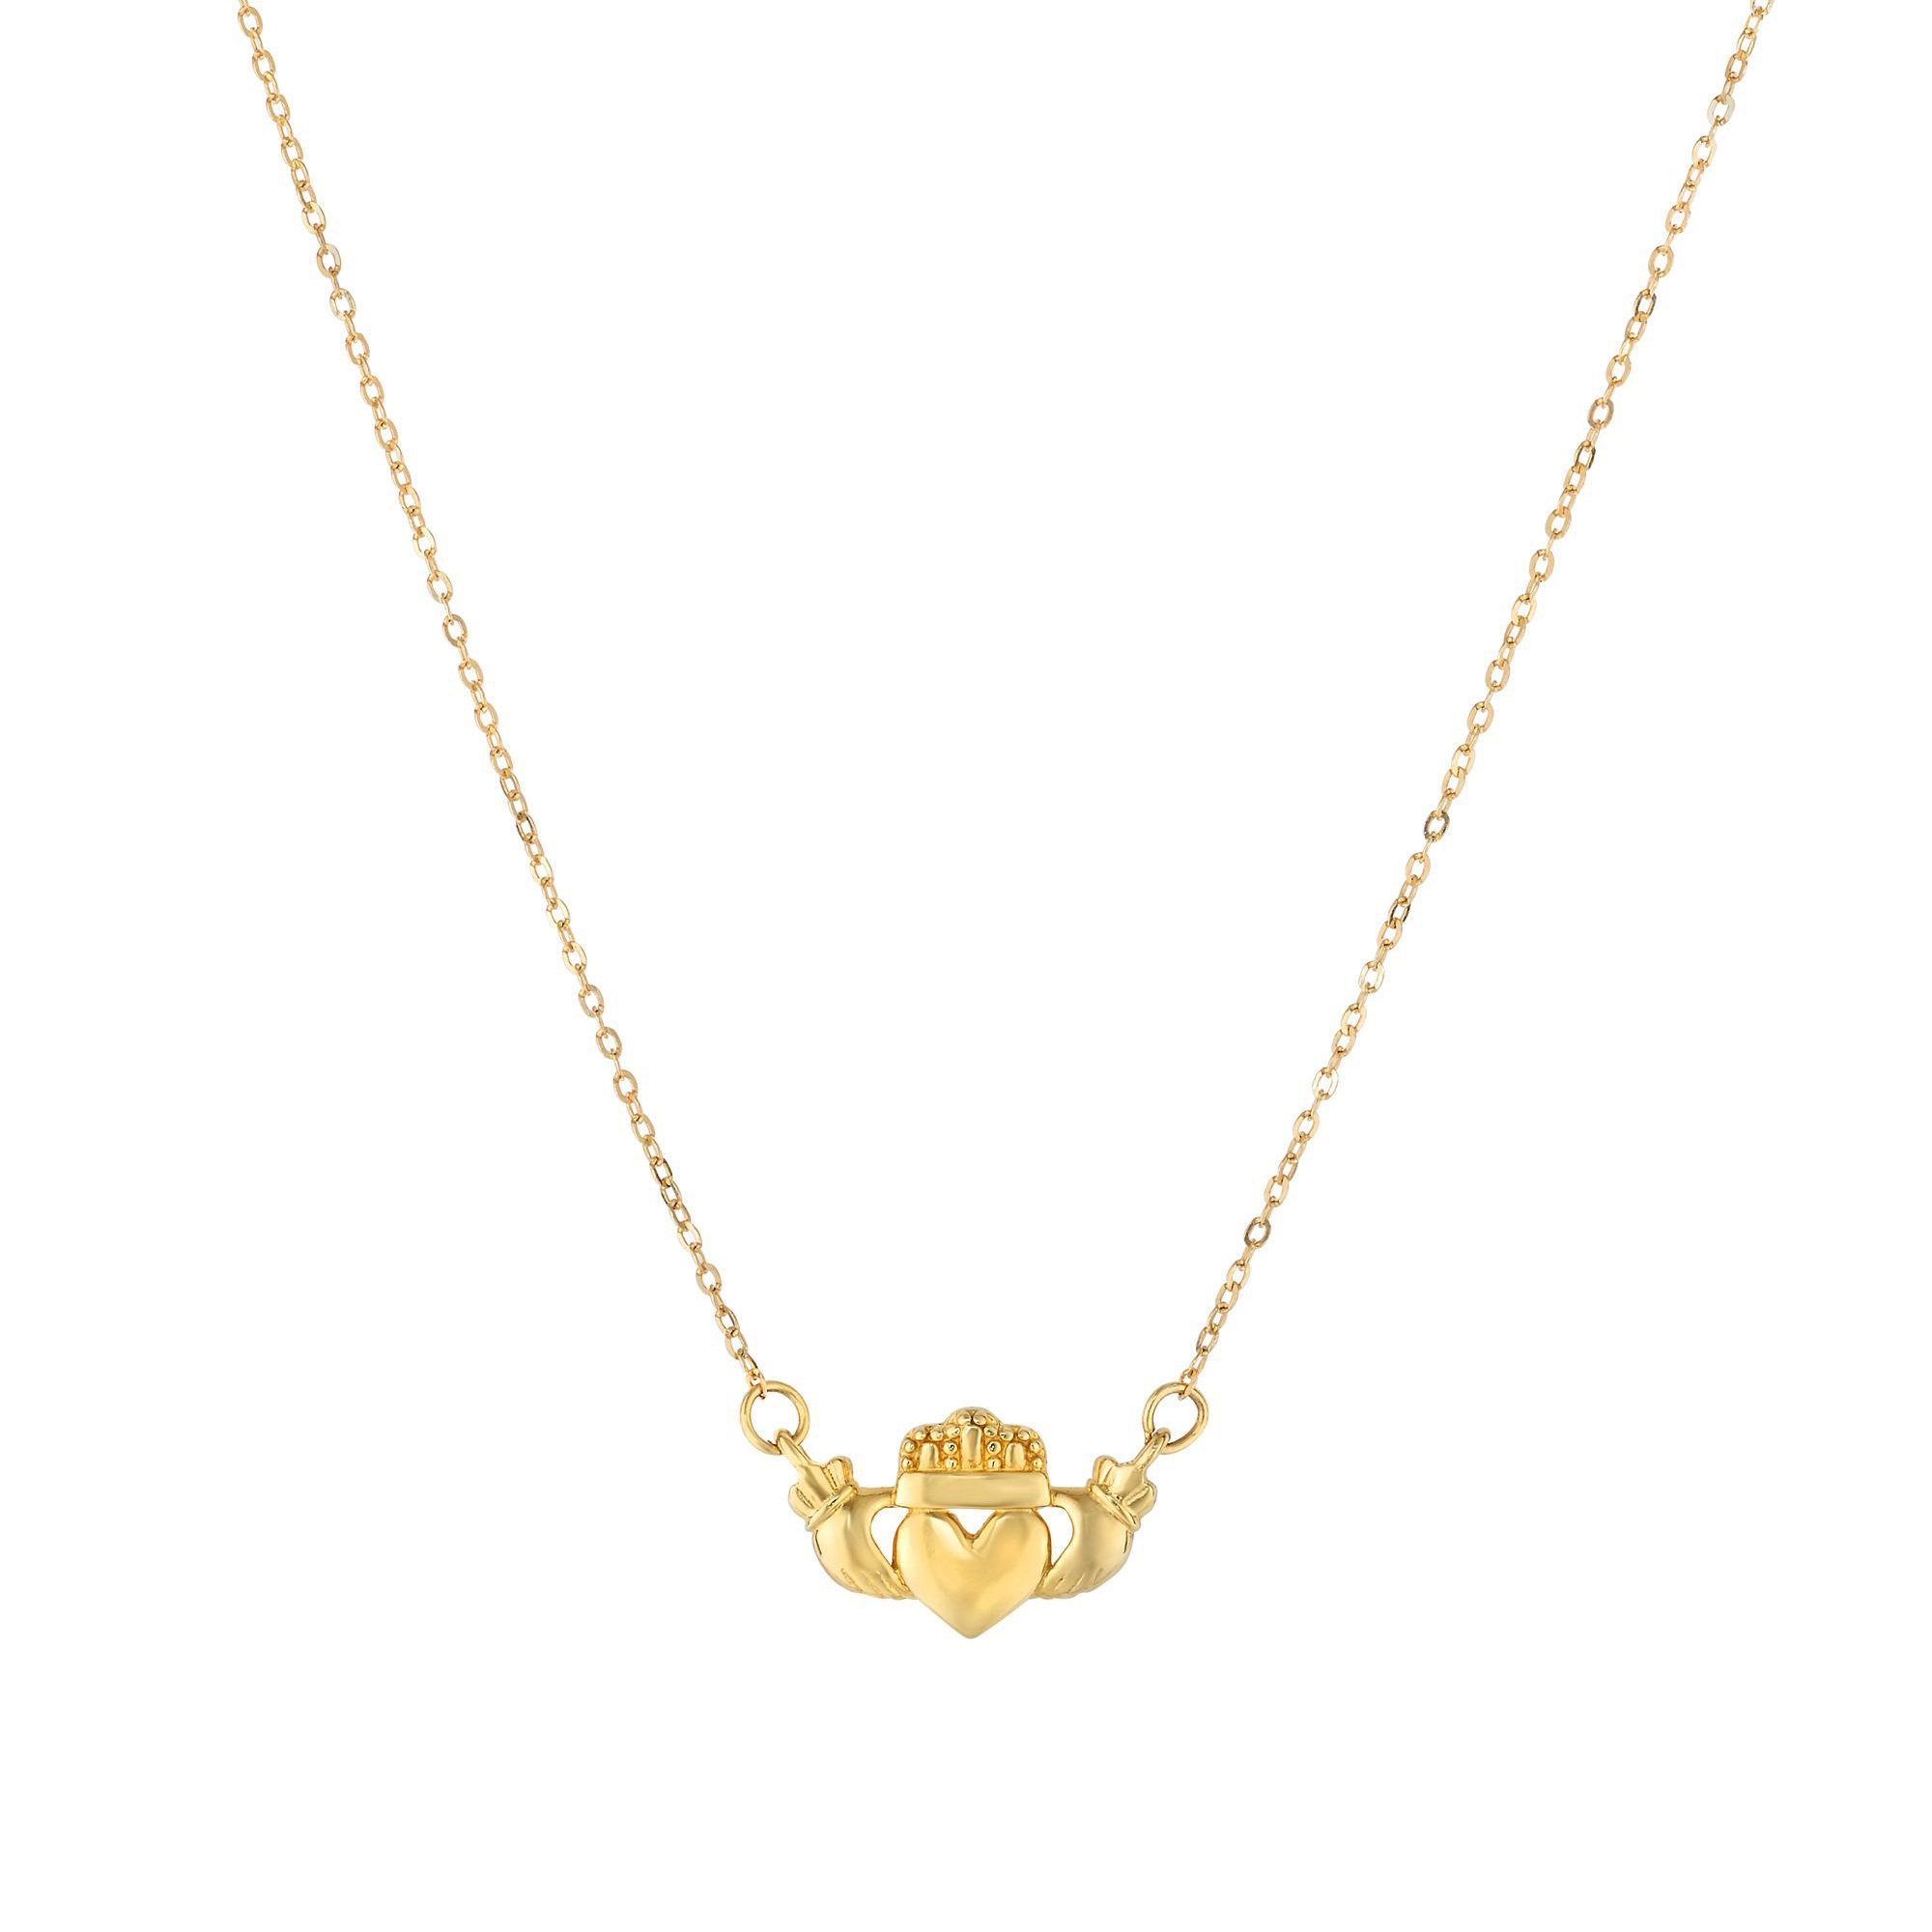 14k Yellow Gold Polished Claddagh Center Charm On Chain Necklace, 17